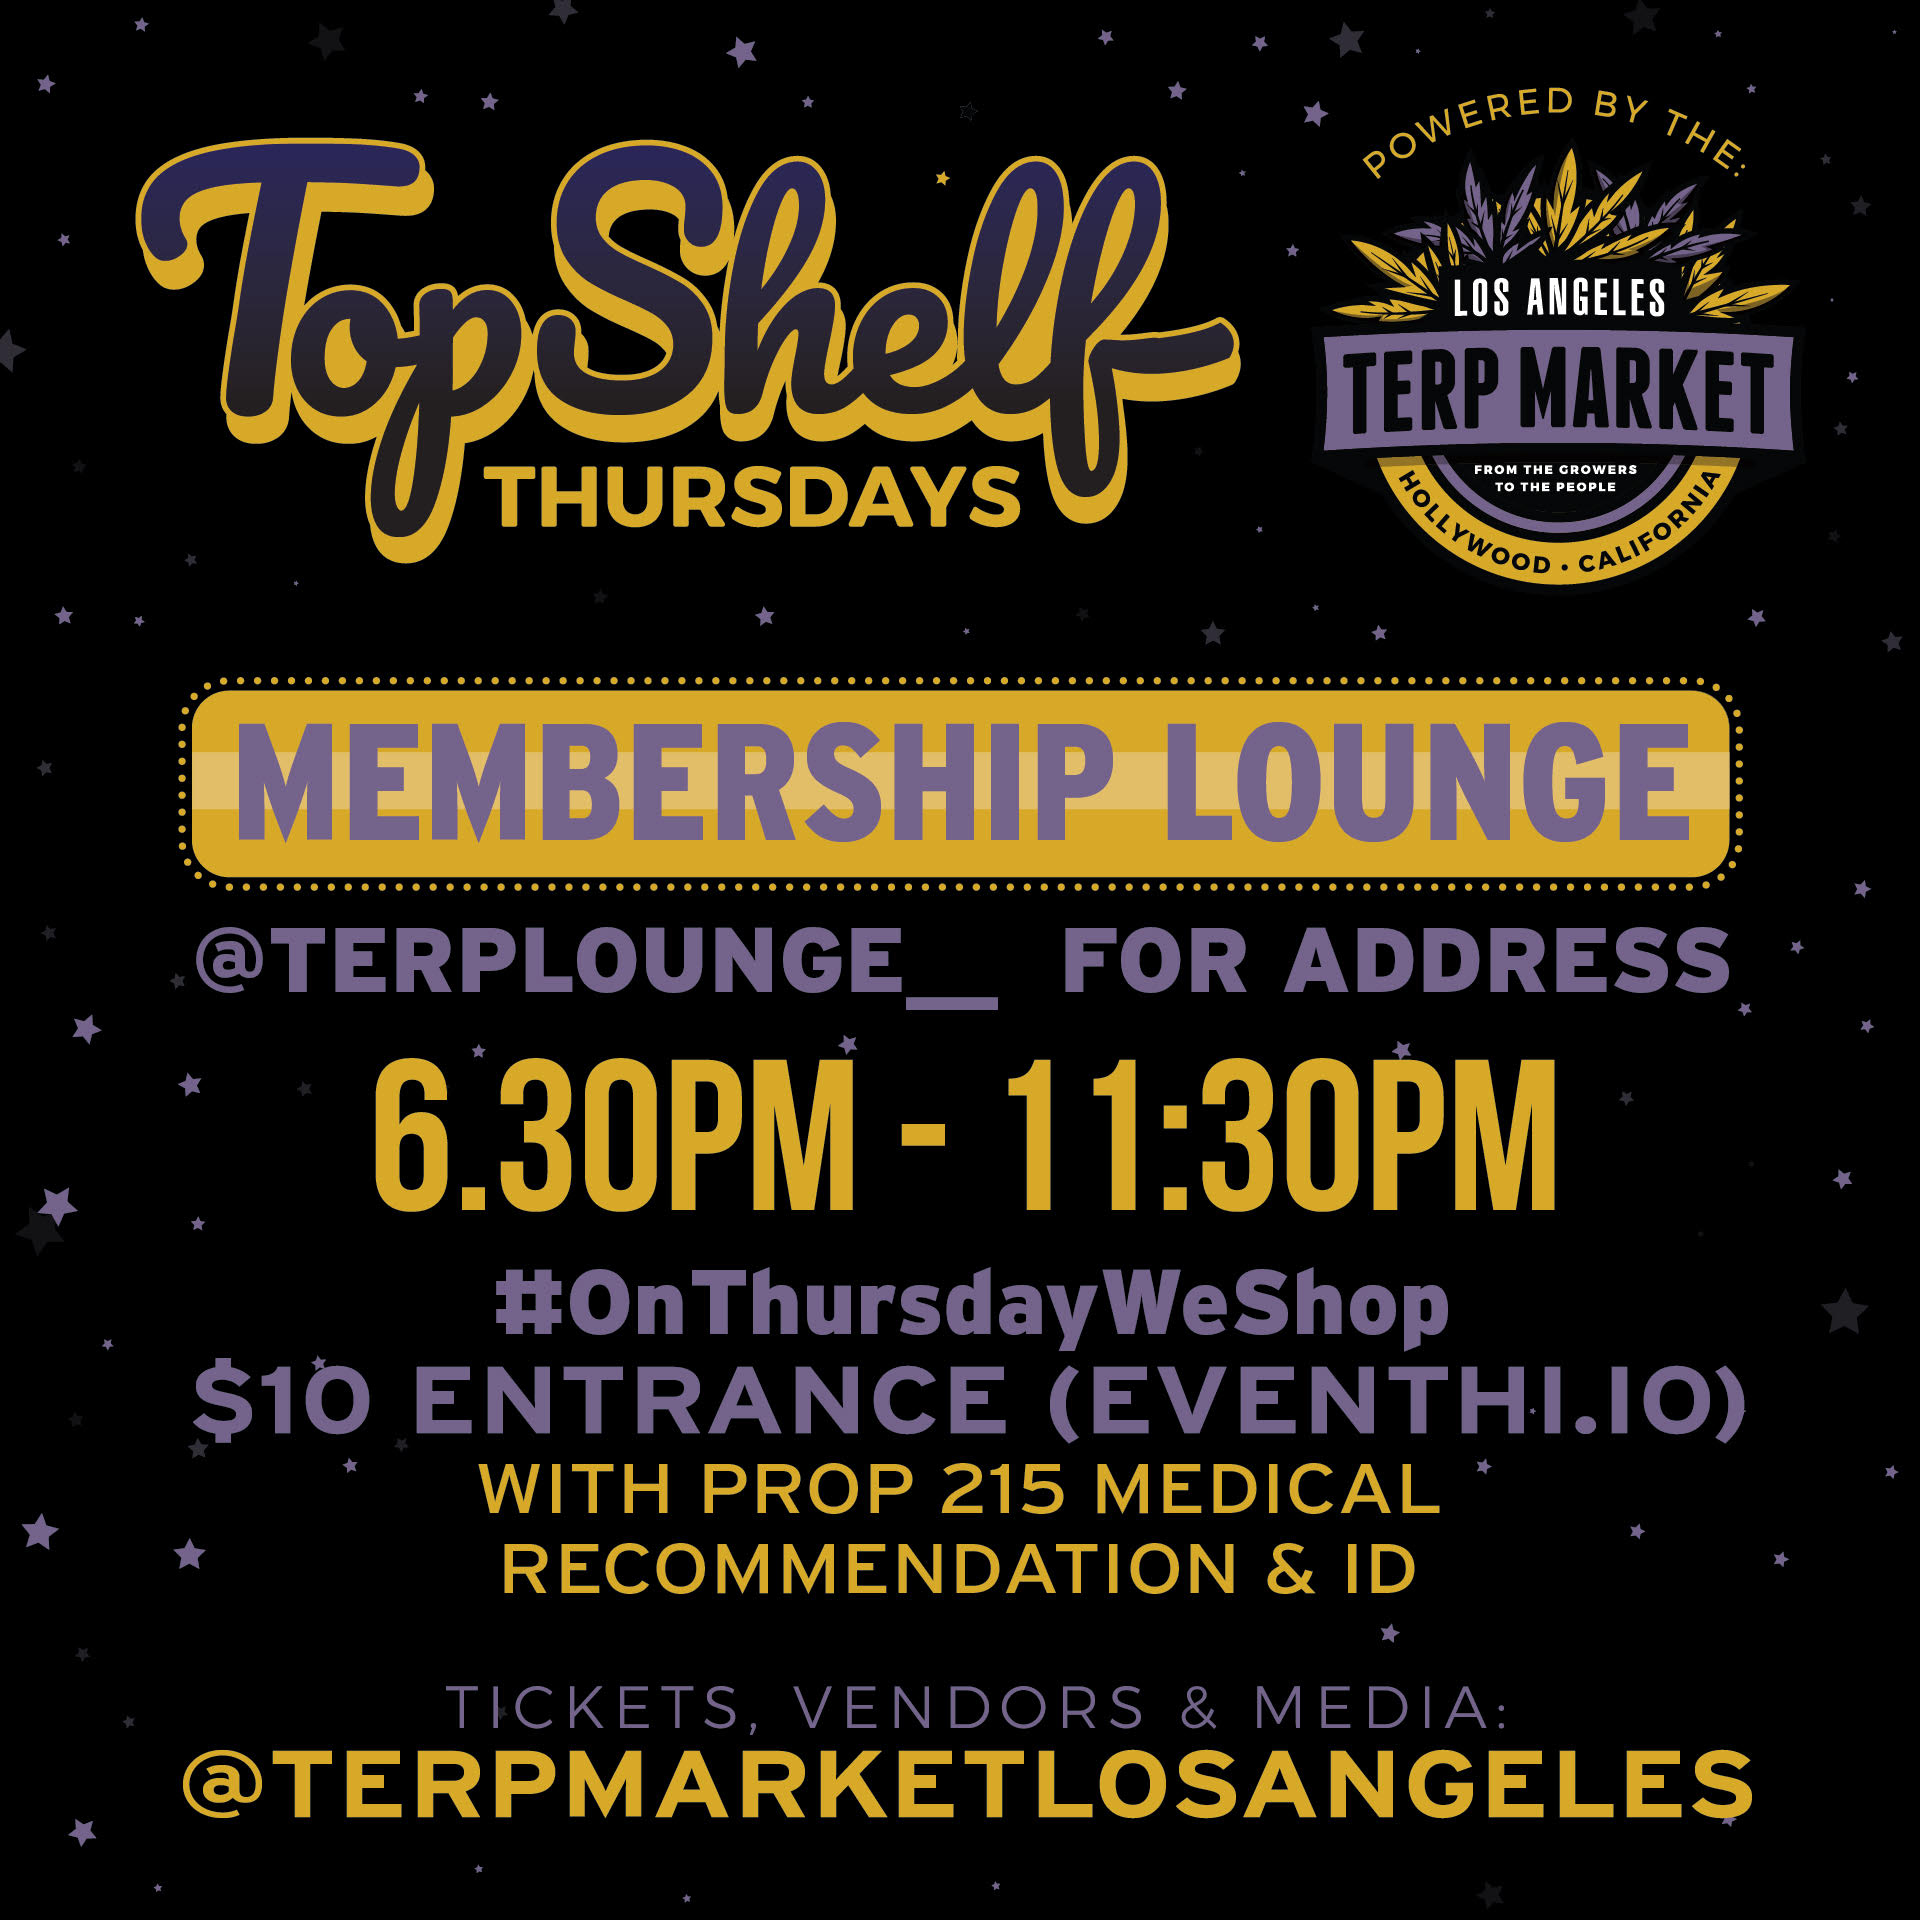 Terp Market Top Shelf Thursday Los Angeles 5/2